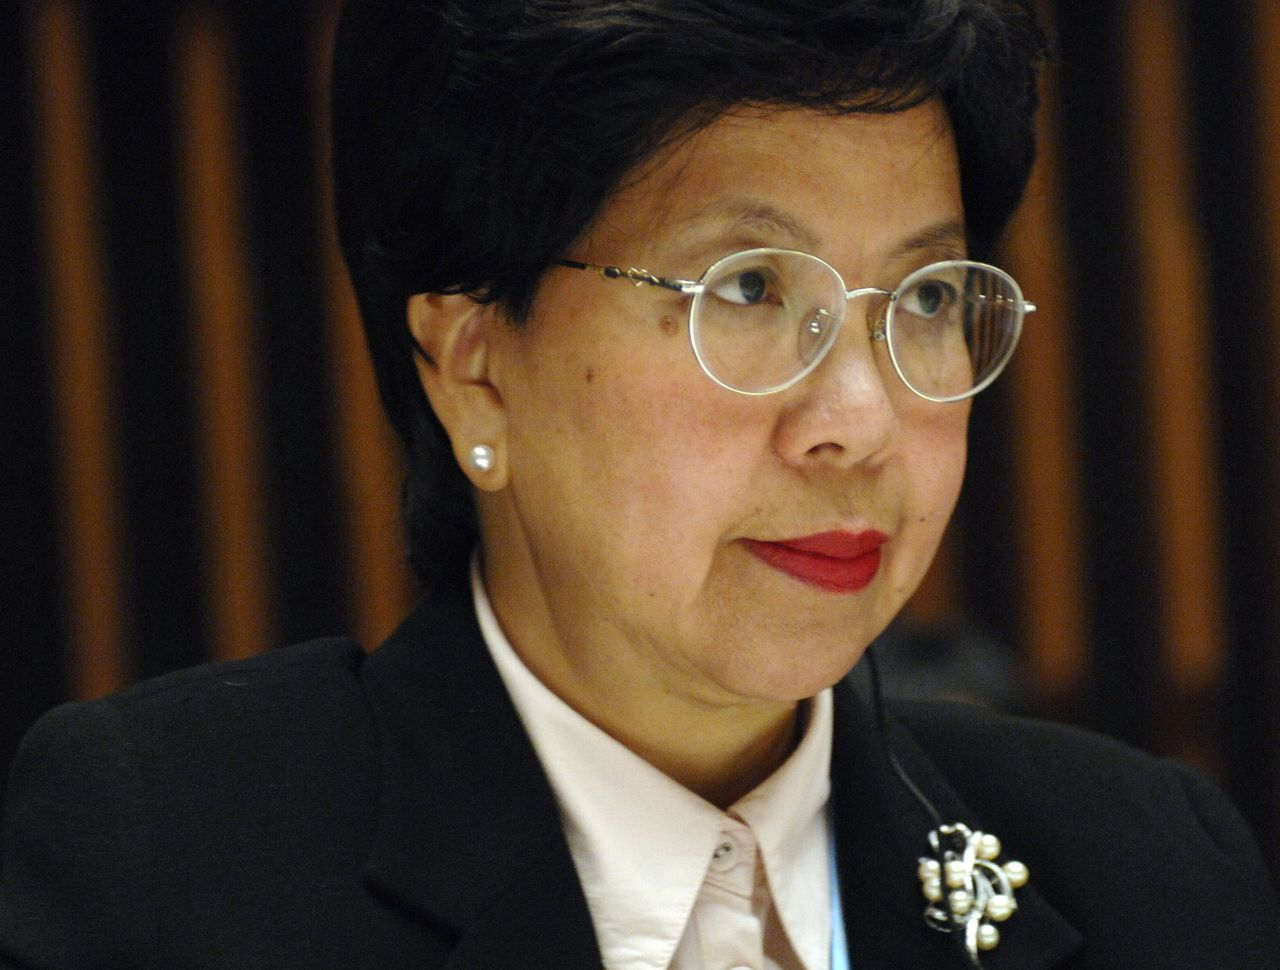 Margaret Chan Foto Reuters Newly nominated World Health Organisation (WHO) Director-General Margaret Chan of China listens during an Executive Board meeting at the WHO headquarters in Geneva November 8, 2006. Chan, the WHO's top official on bird flu, will become the first Chinese to head a major United Nations agency. REUTERS/Denis Balibouse (SWITZERLAND)